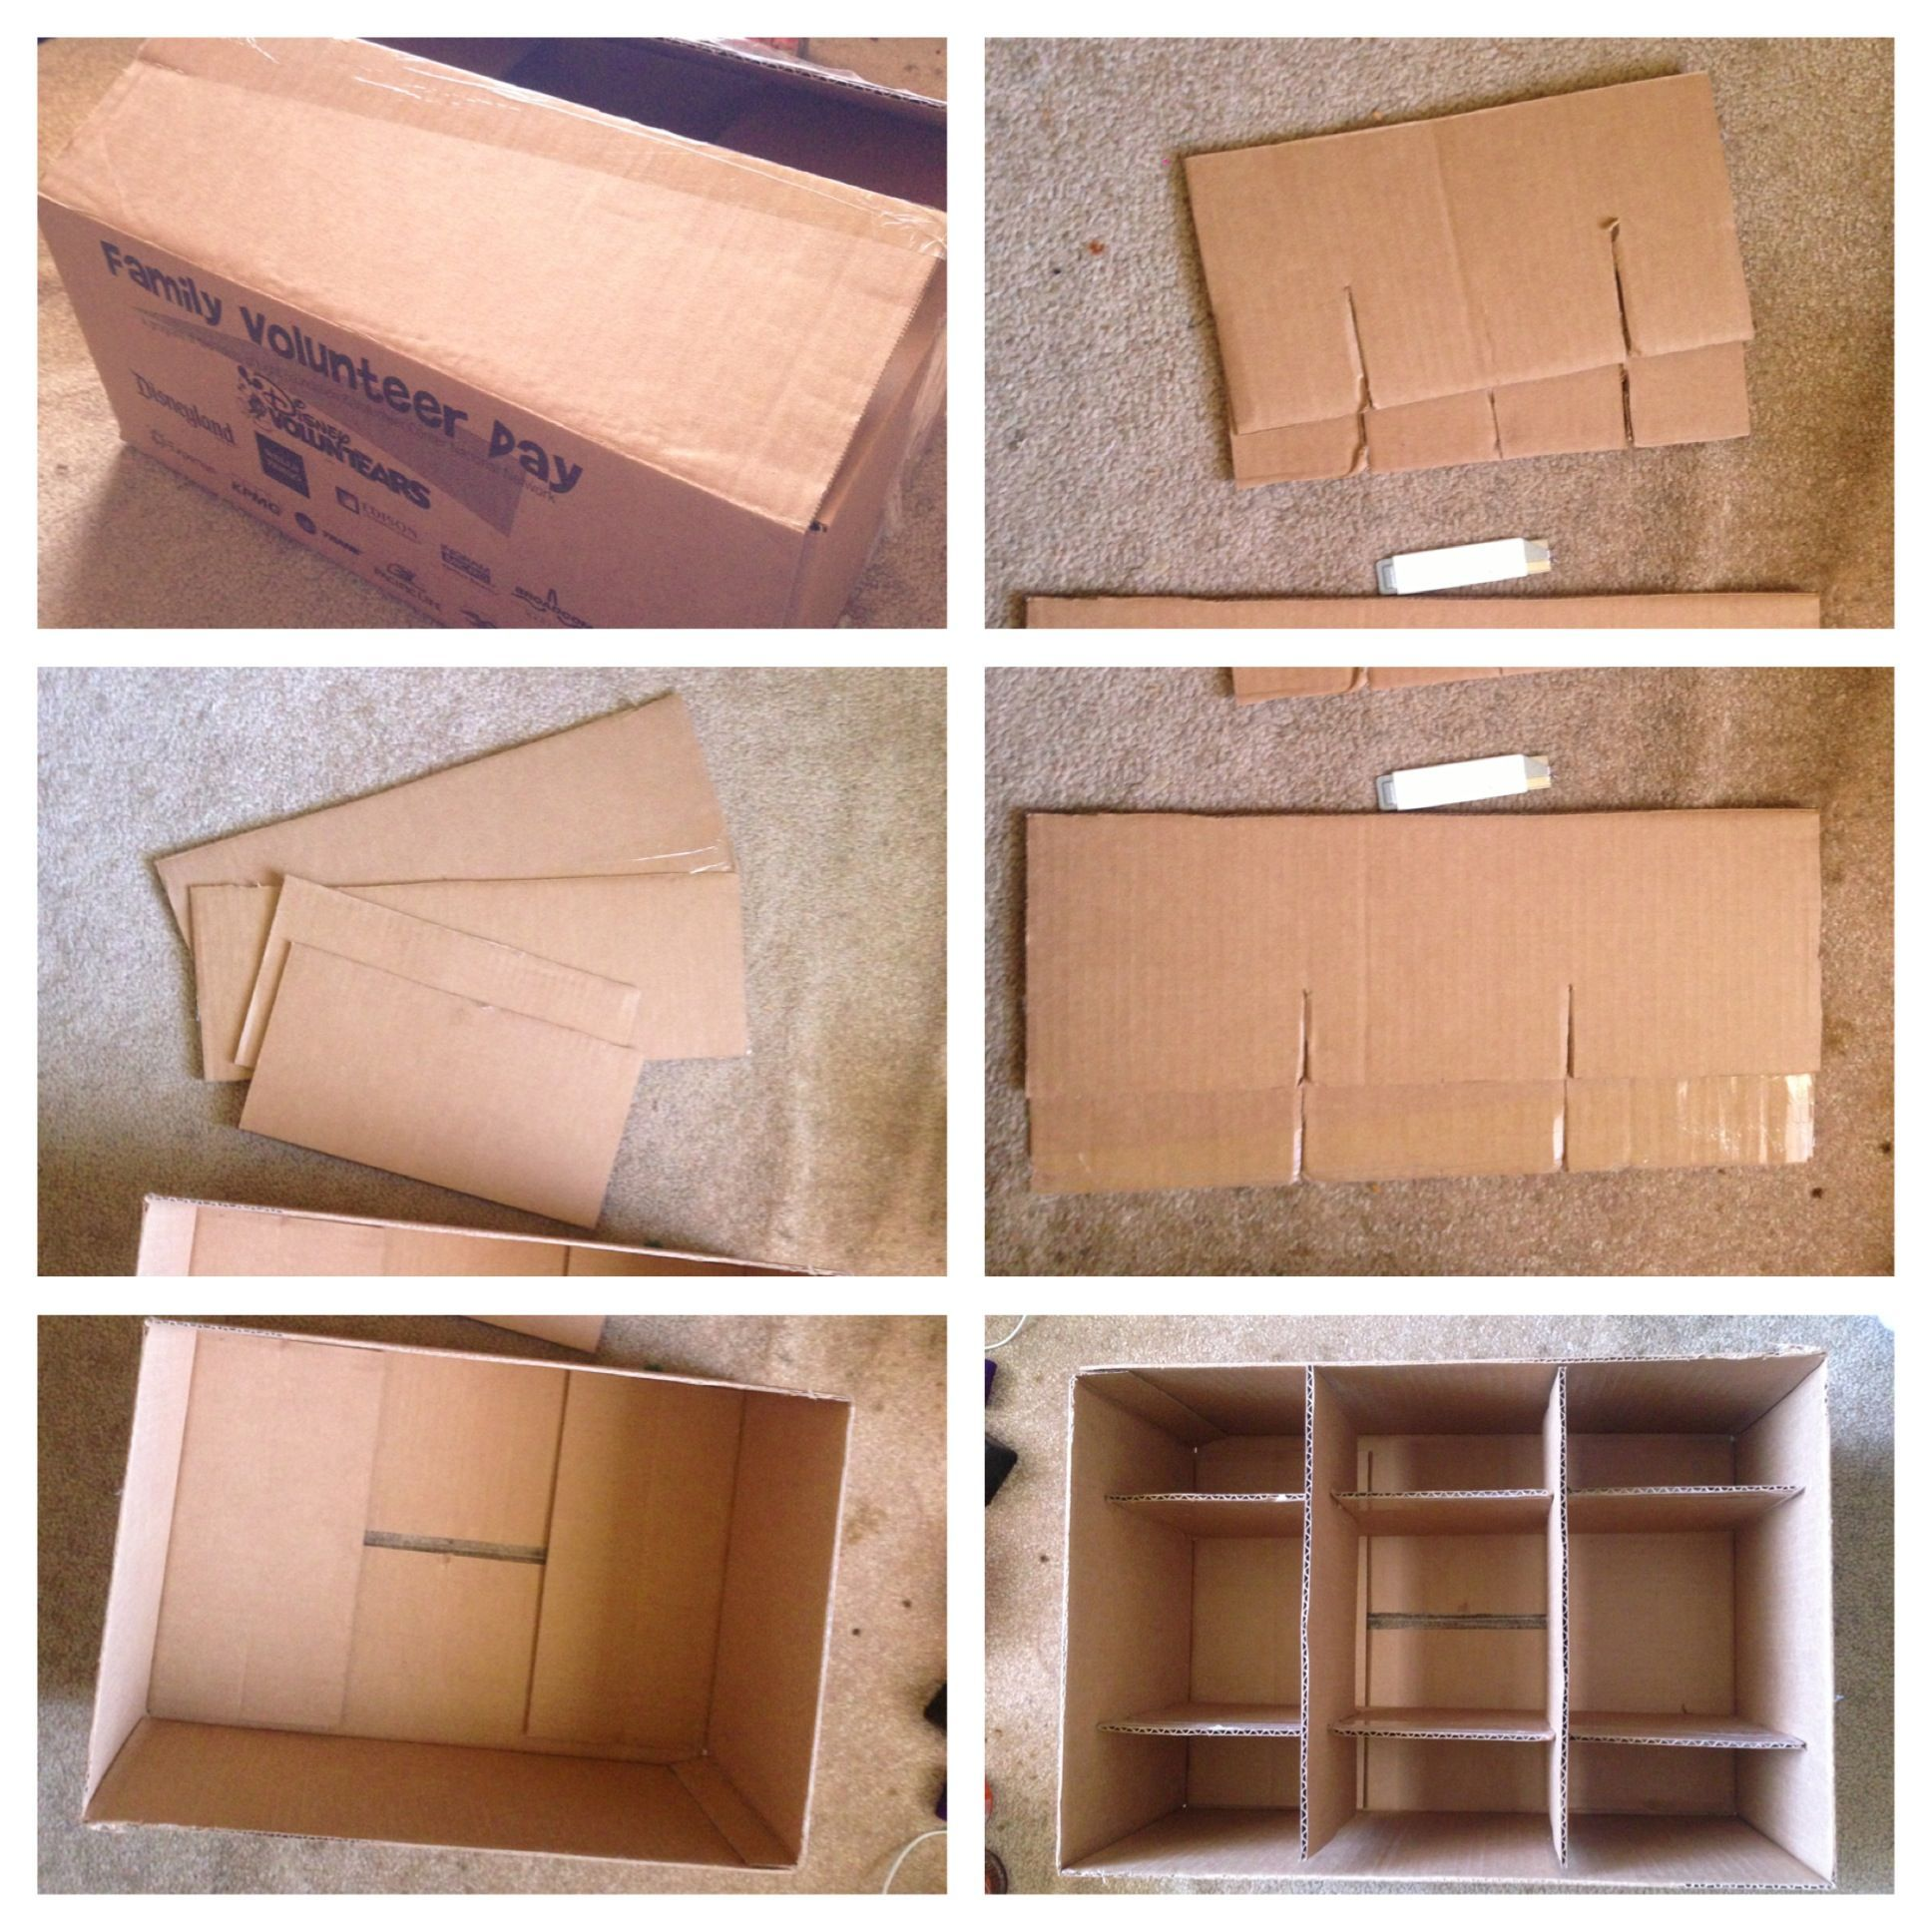 Extra large cardboard storage boxes - Making A Storage Box With Dividers Using Just A Cardboard Box And Box Cutter